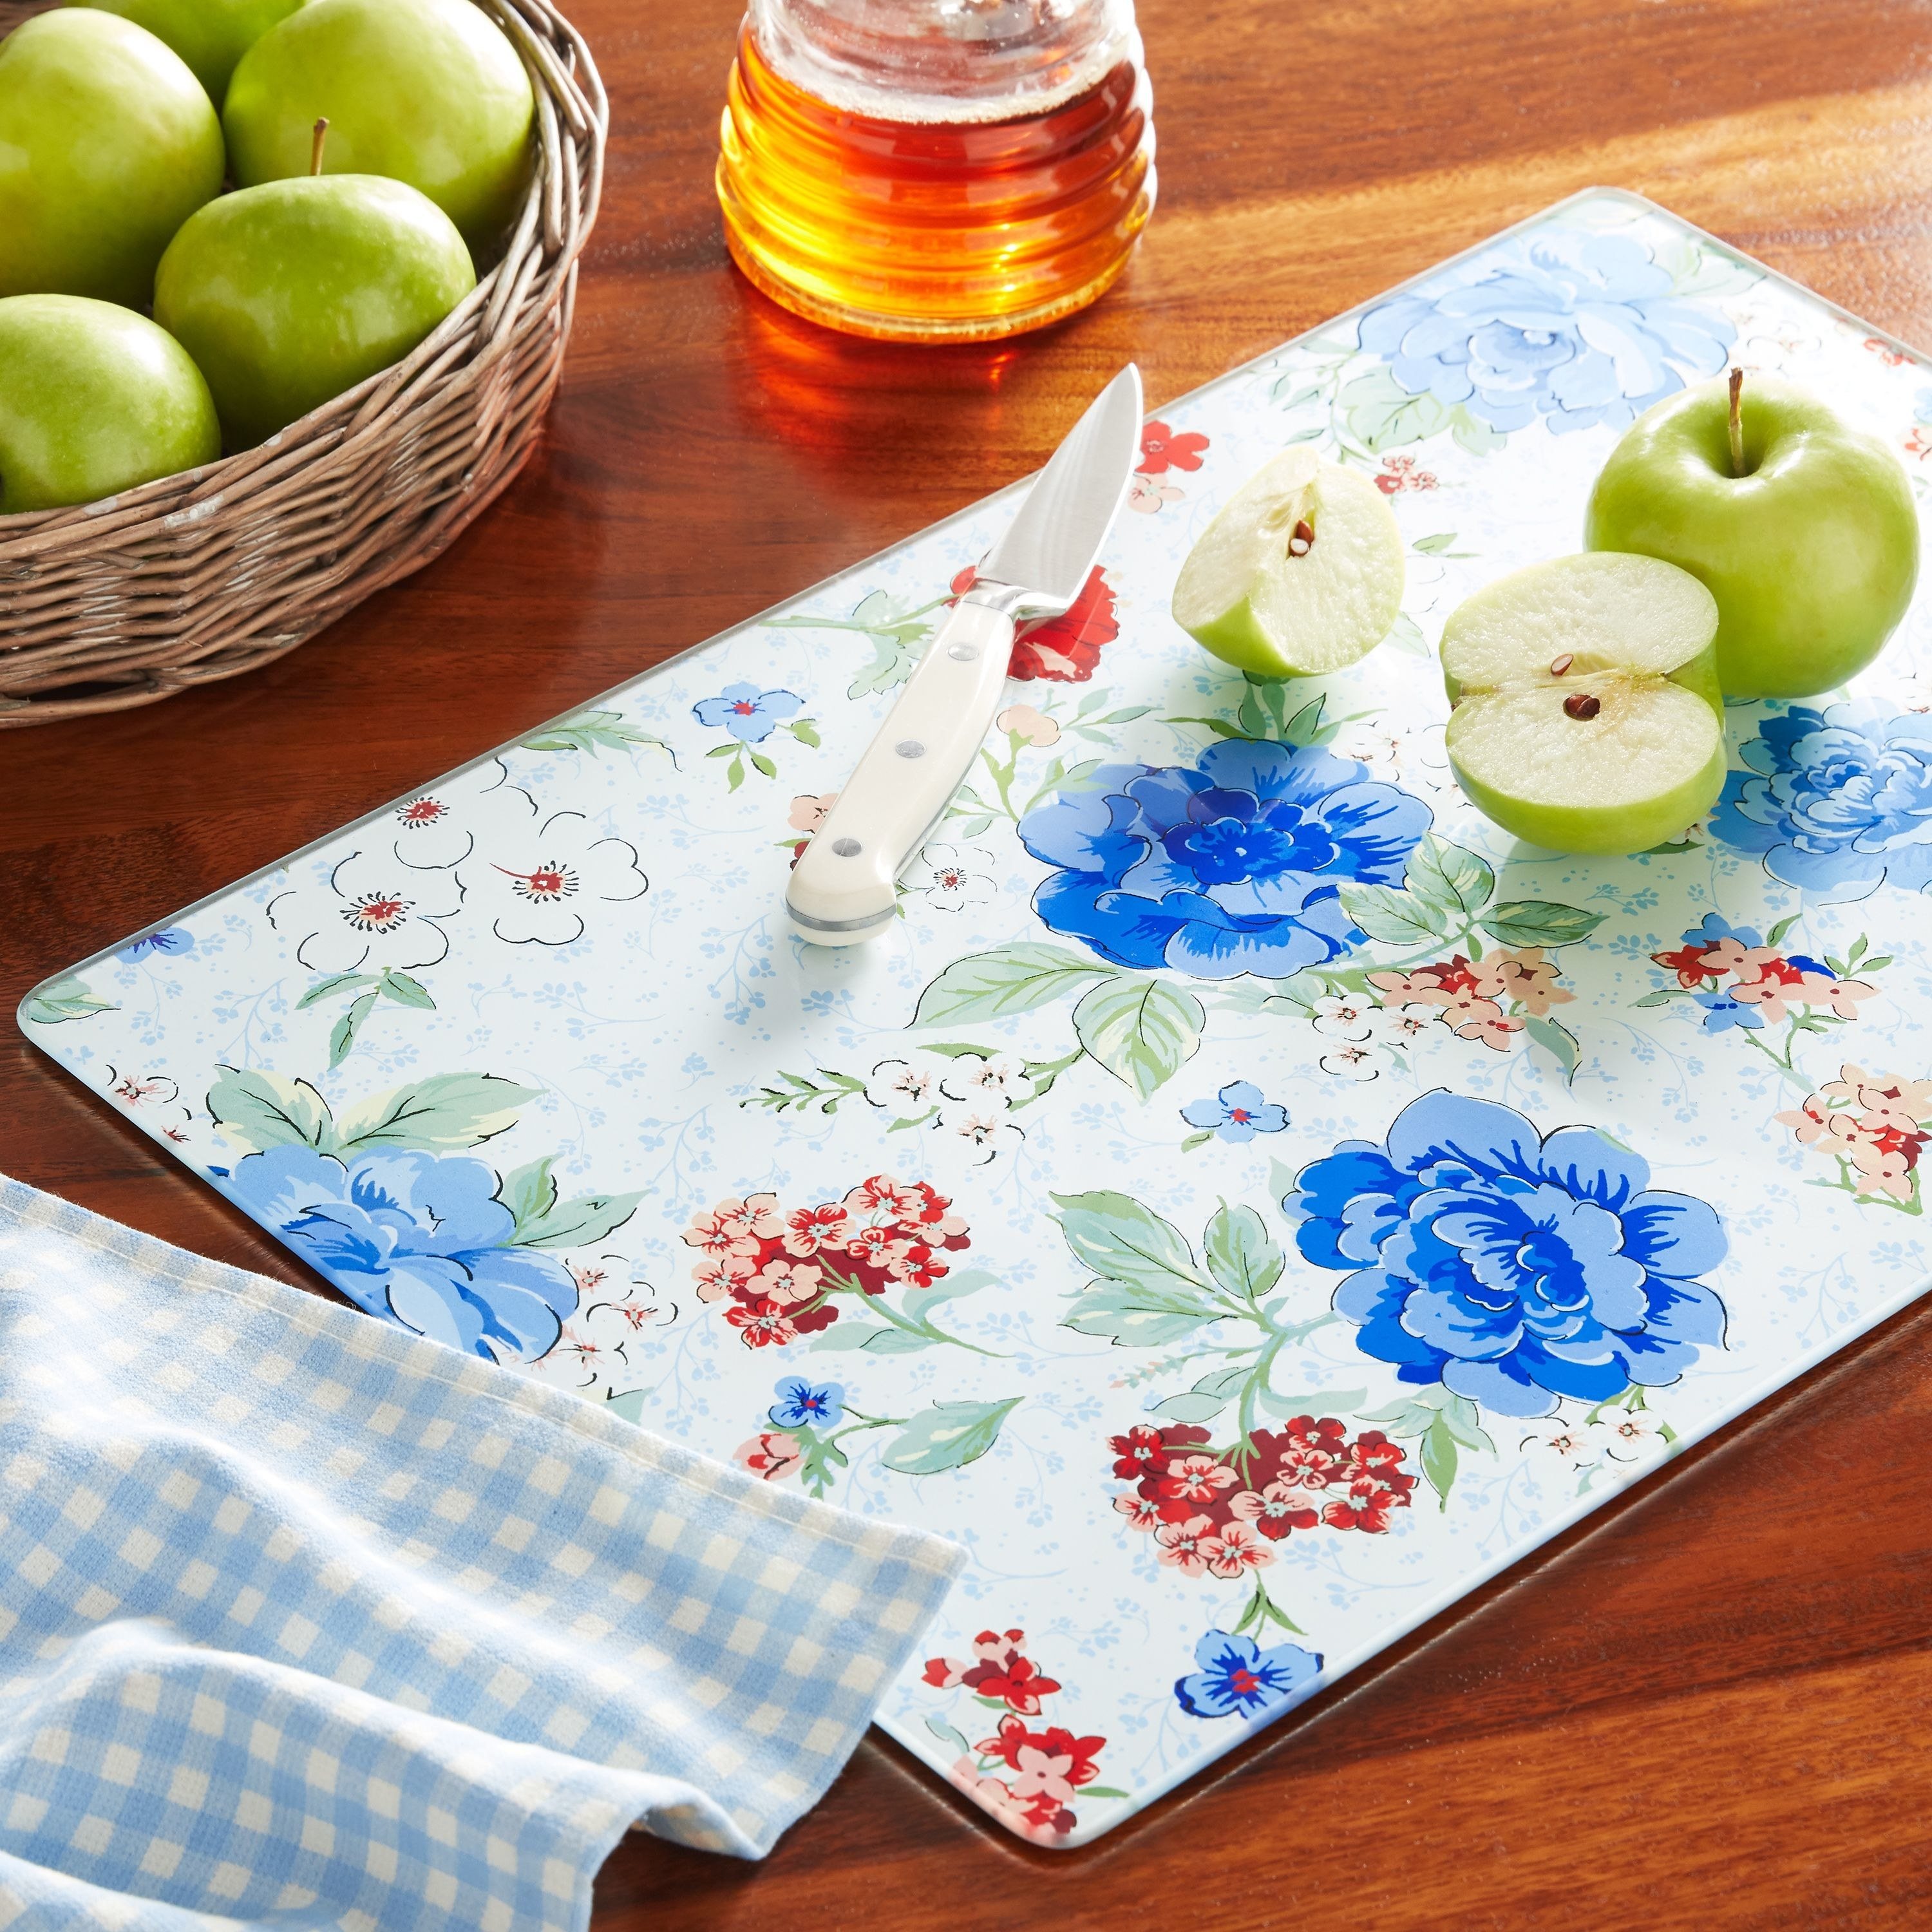 Floral-printed glass cutting board with apples on it